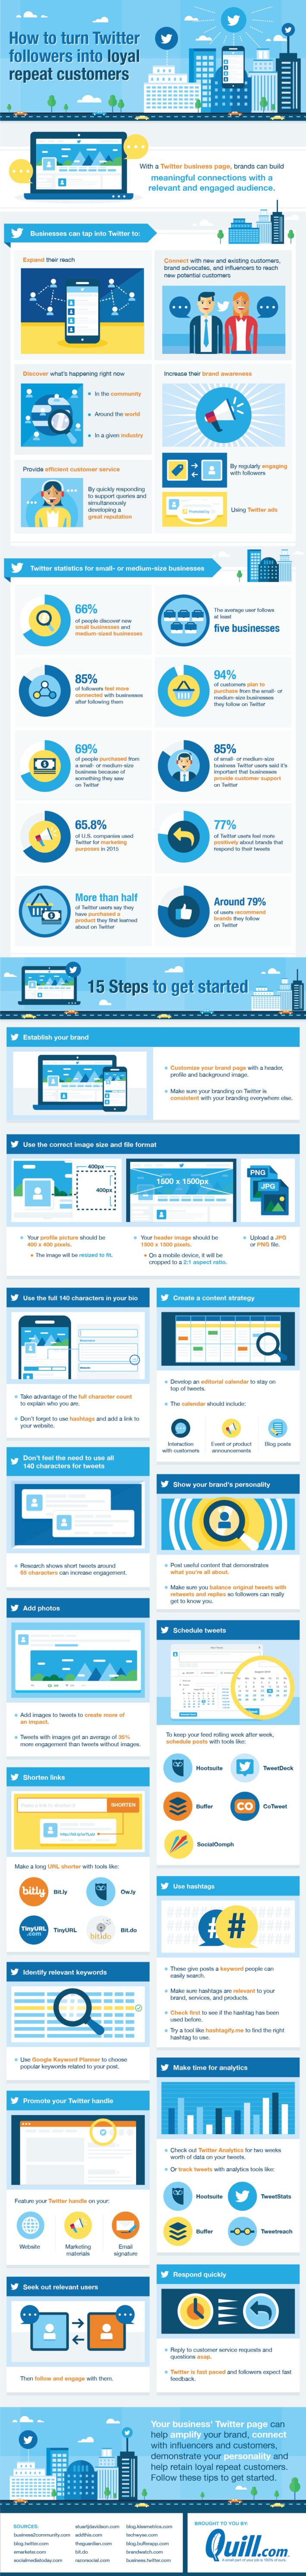 How to Turn Twitter Followers into Repeat Customers [Infographic] | Social Media Today